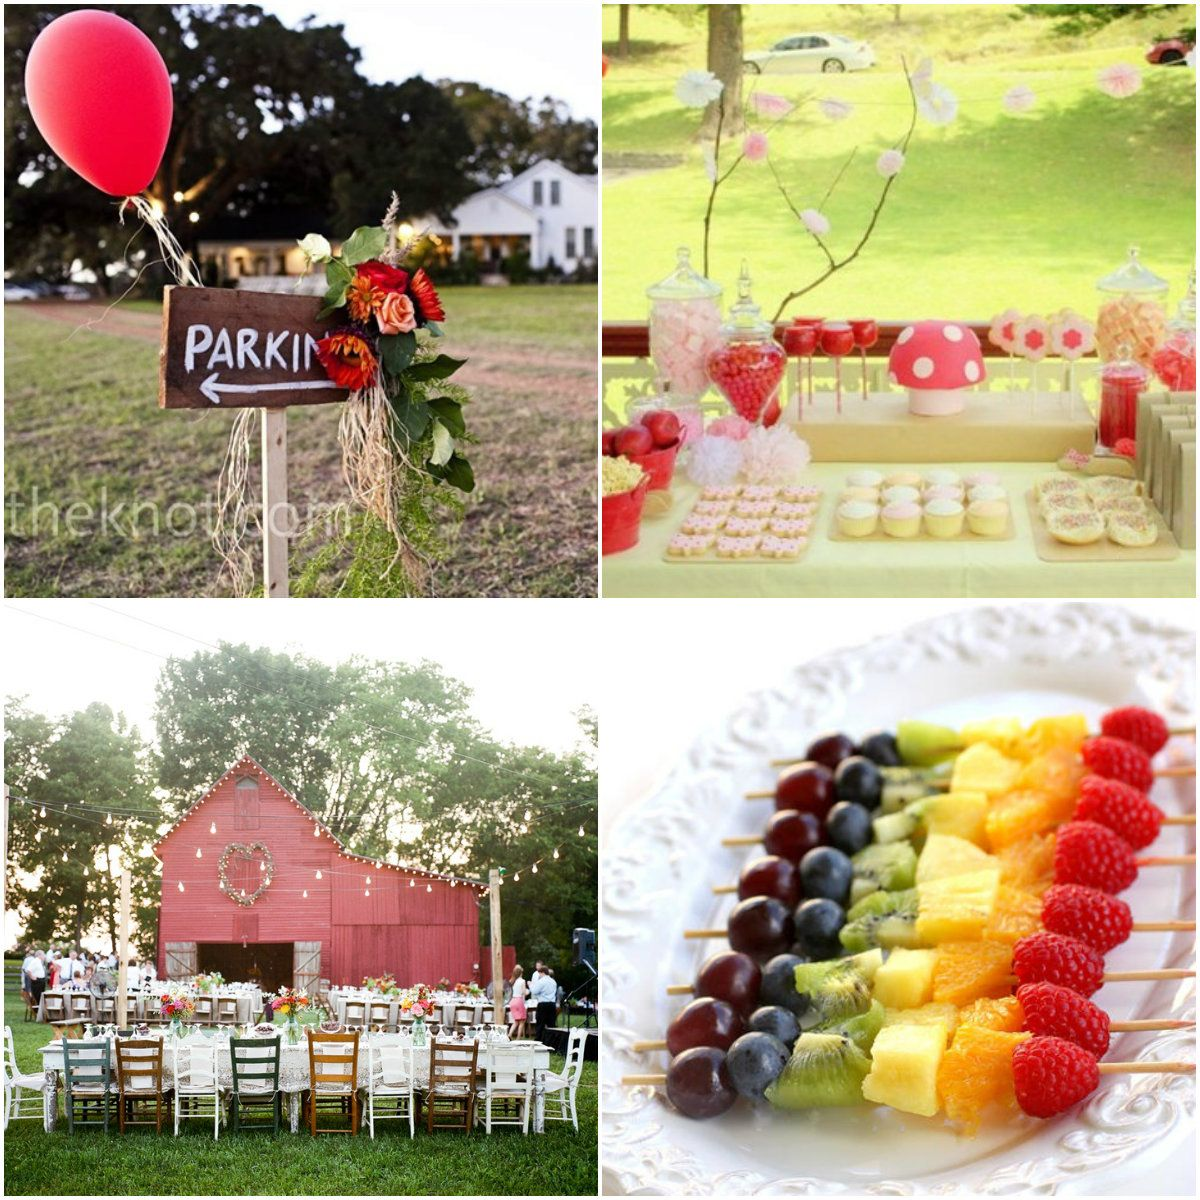 Garden Party Ideas Pinterest garden party 18th Birthday Garden Party Decorations